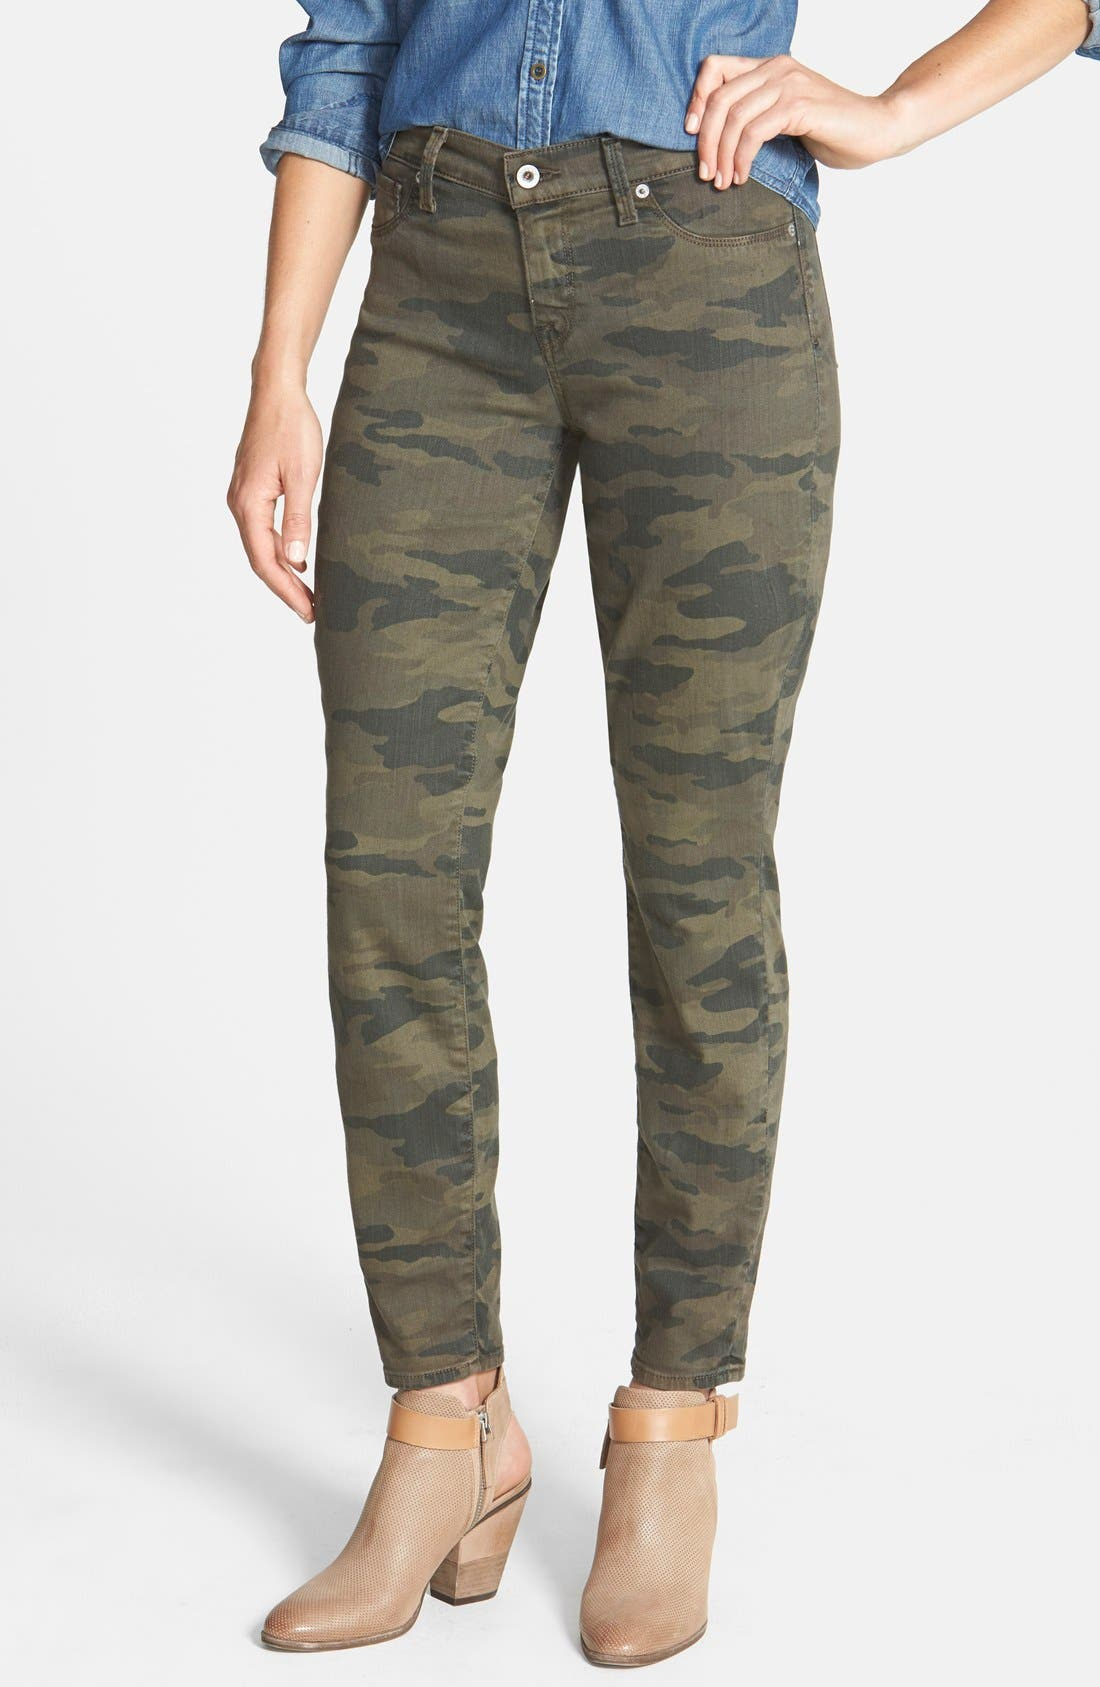 Alternate Image 1 Selected - Lucky Brand 'Sofia' Colored Stretch Skinny Jeans